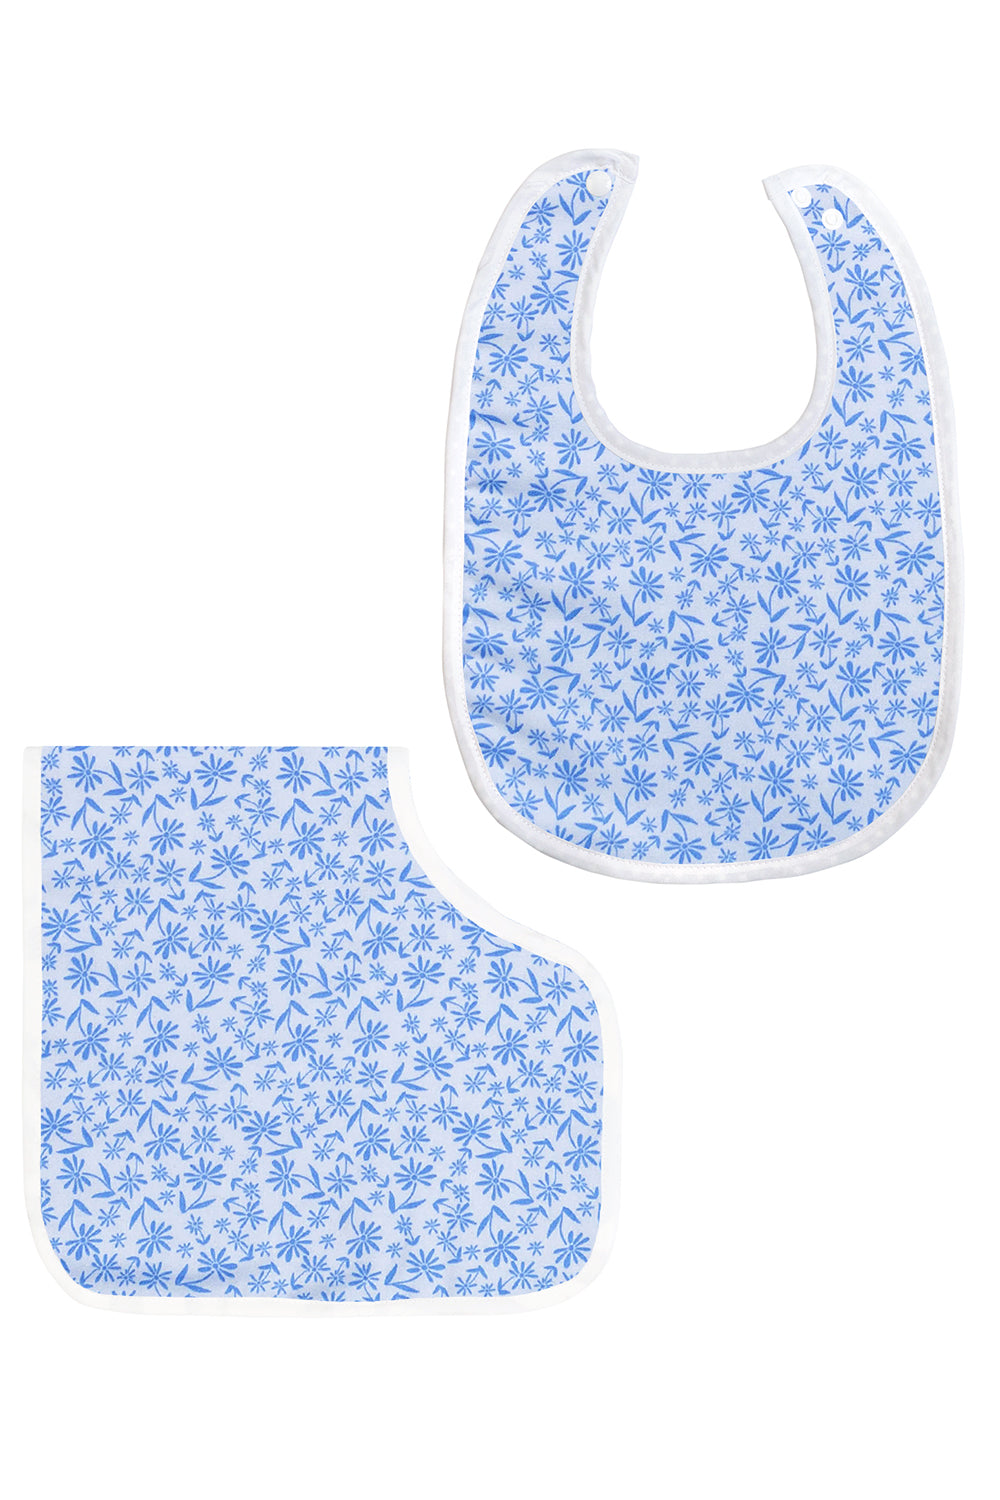 Baby Bib and Burp Cloth Set In Blue Floral Pattern